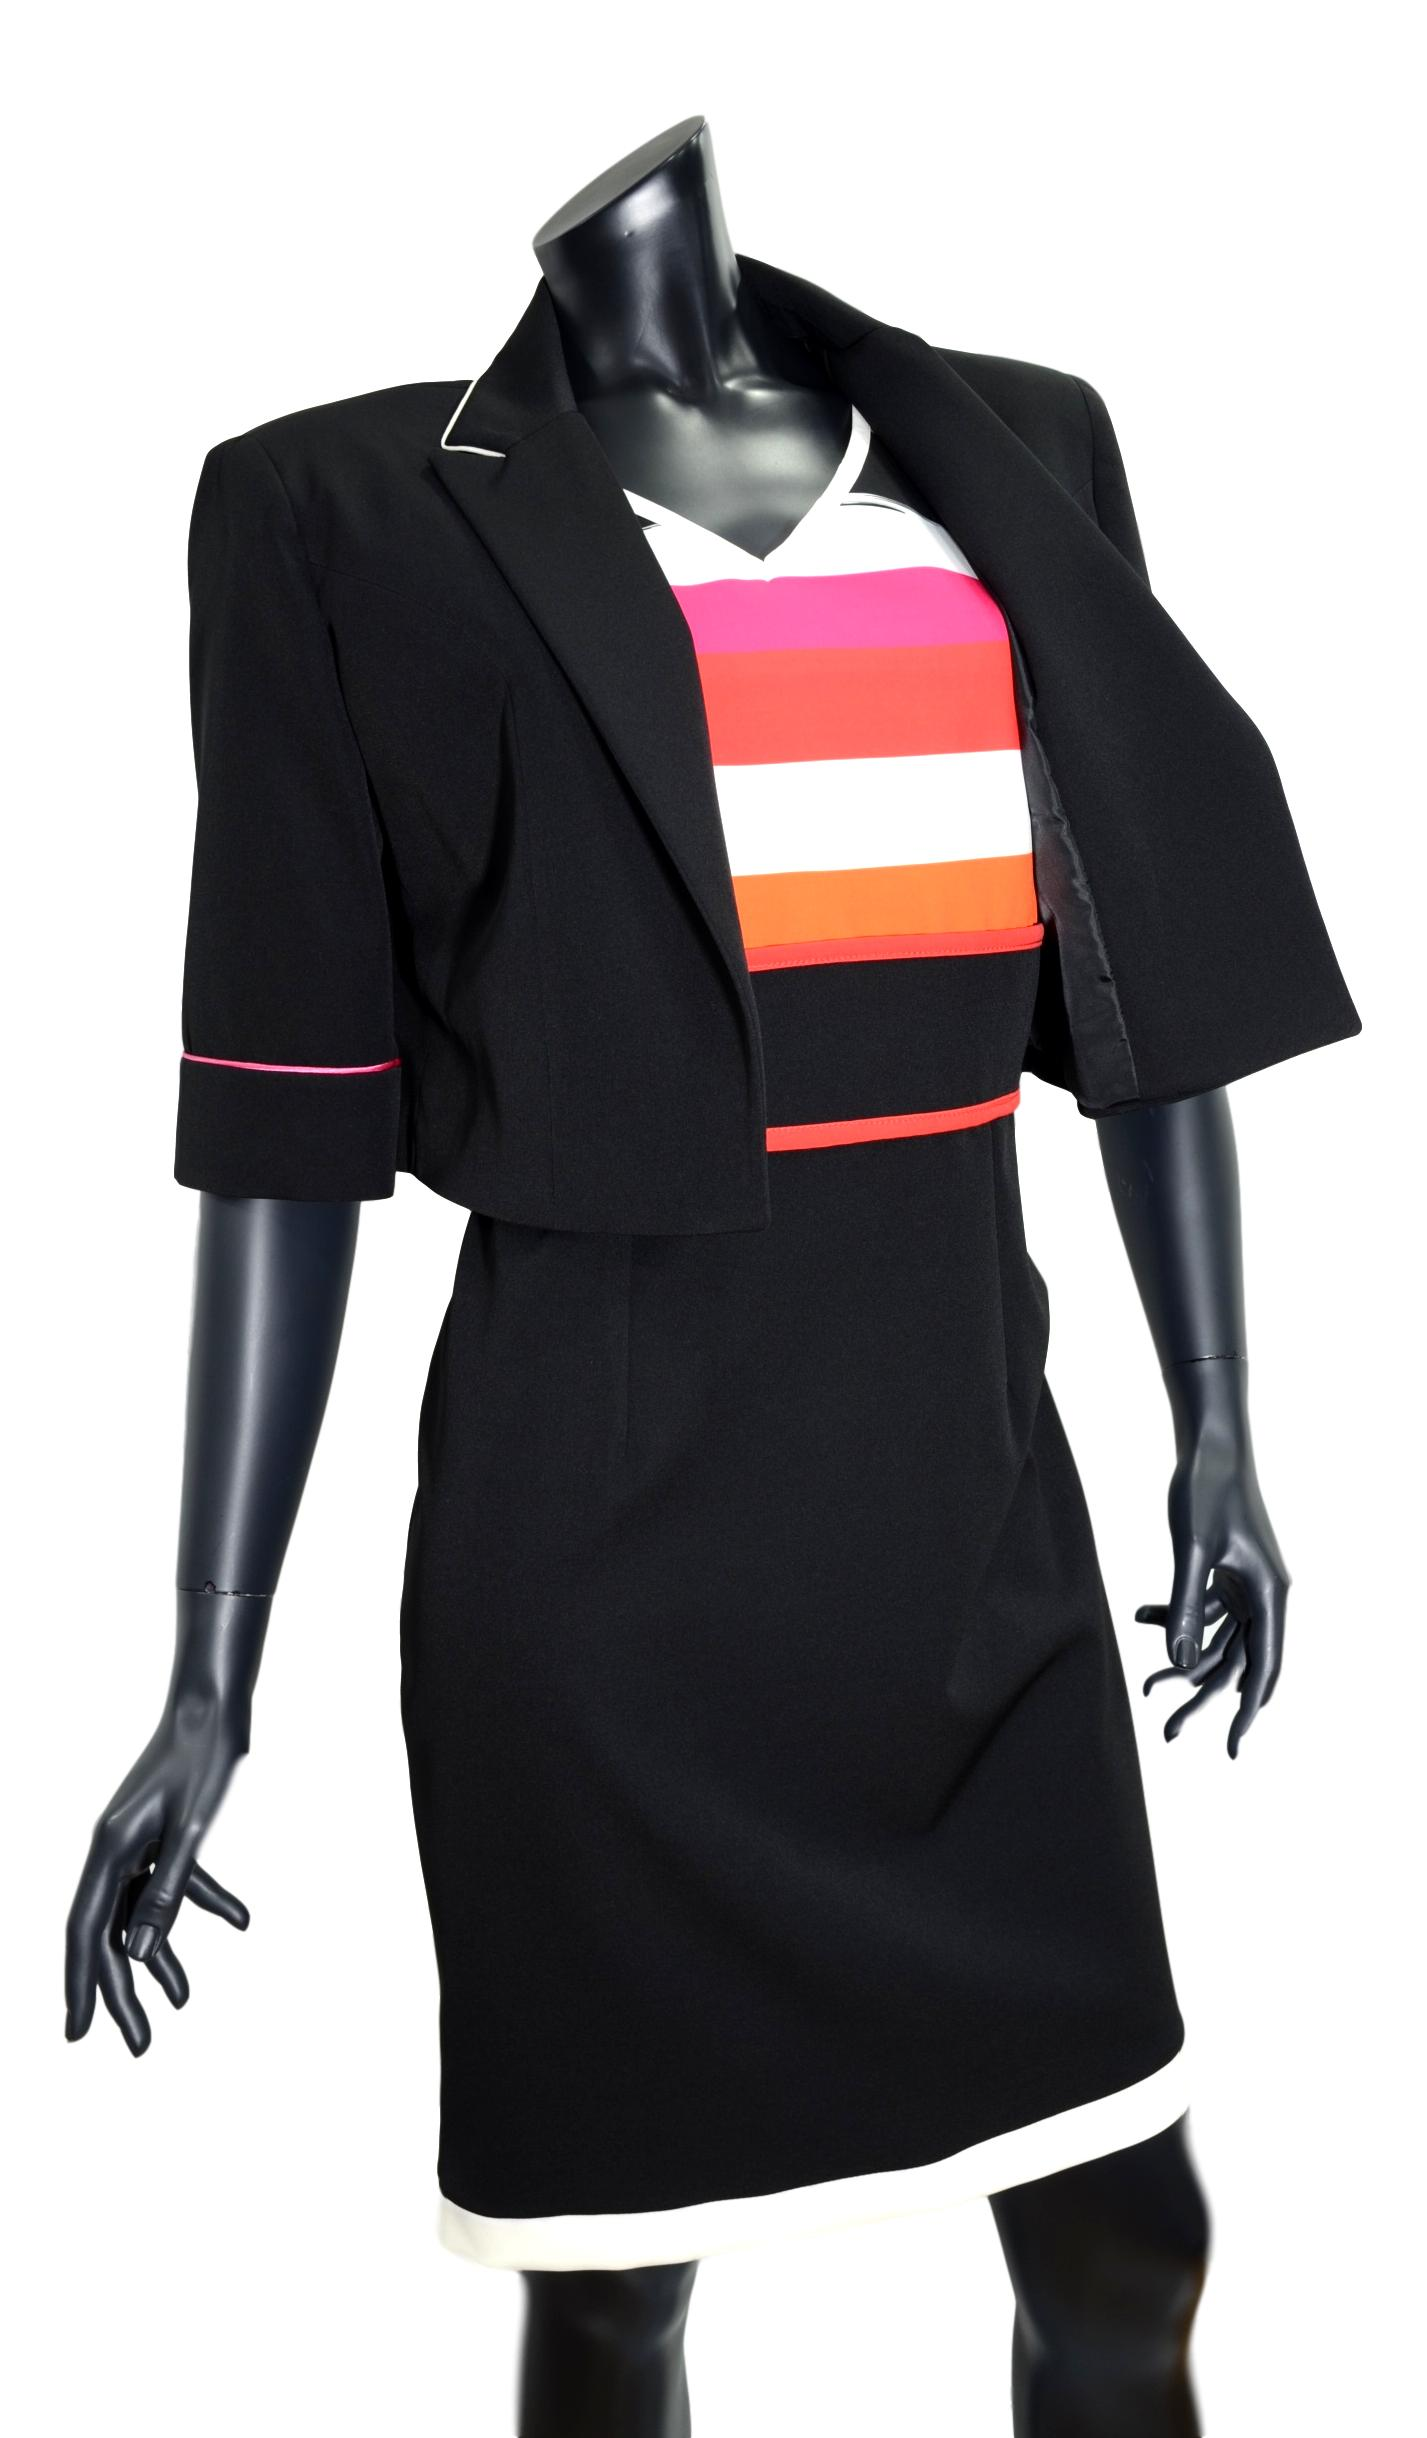 LISA KOTT ABITO CON GIACCA DONNA CURVY STYLE 7123 NERO MADE IN ITALY